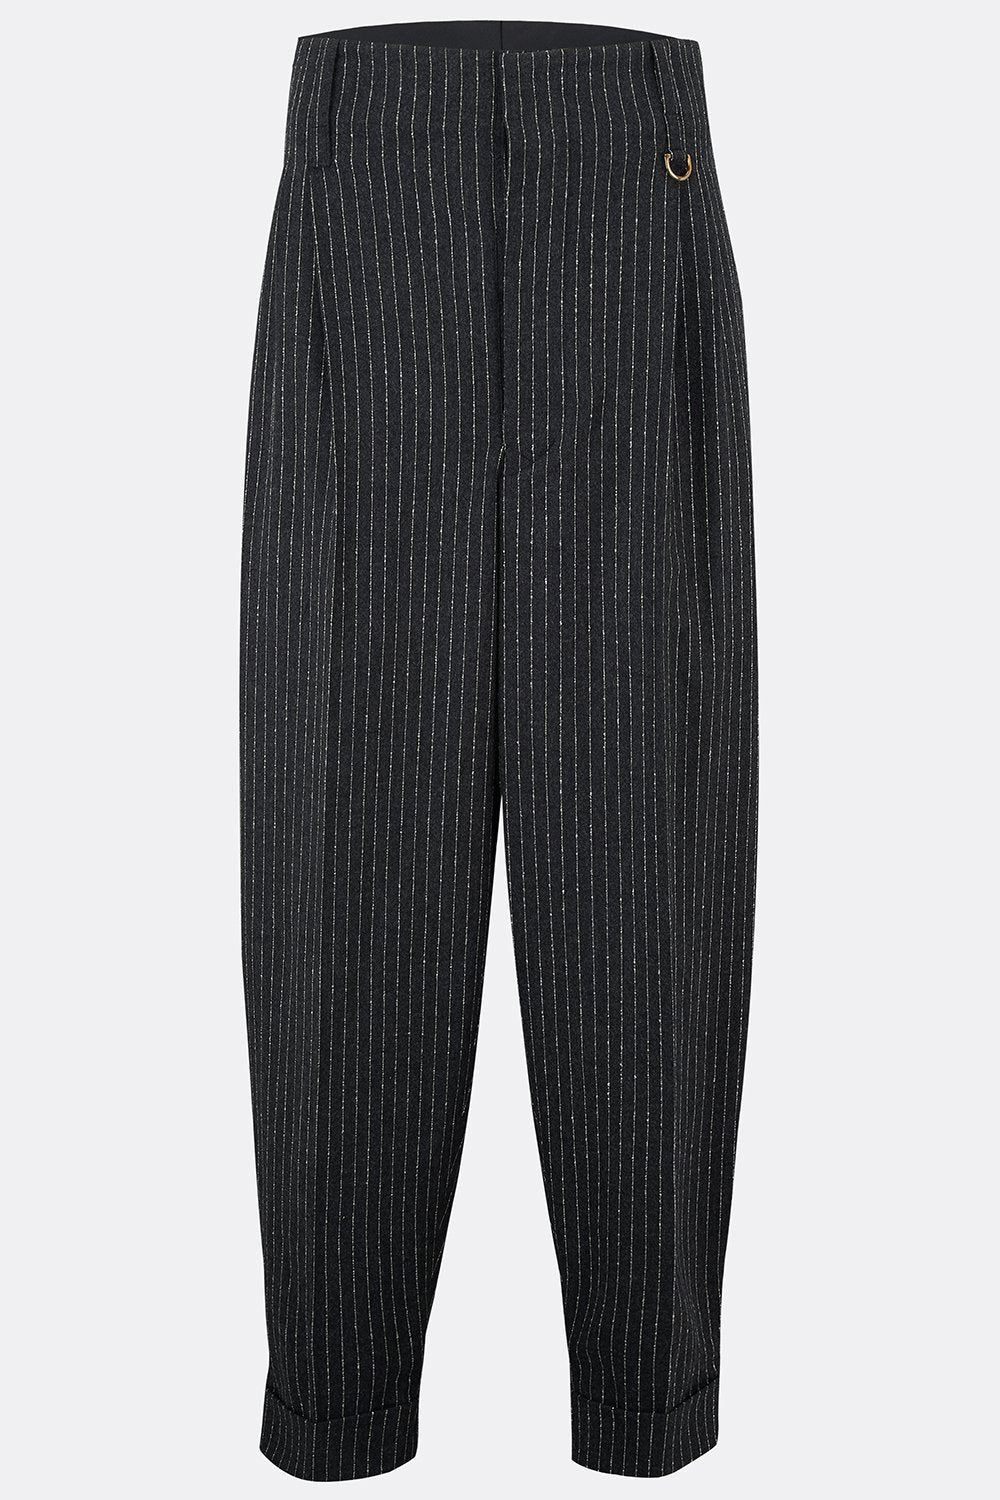 DILLINGER TROUSERS IN CHALK STRIPE-menswear-A Child Of The Jago